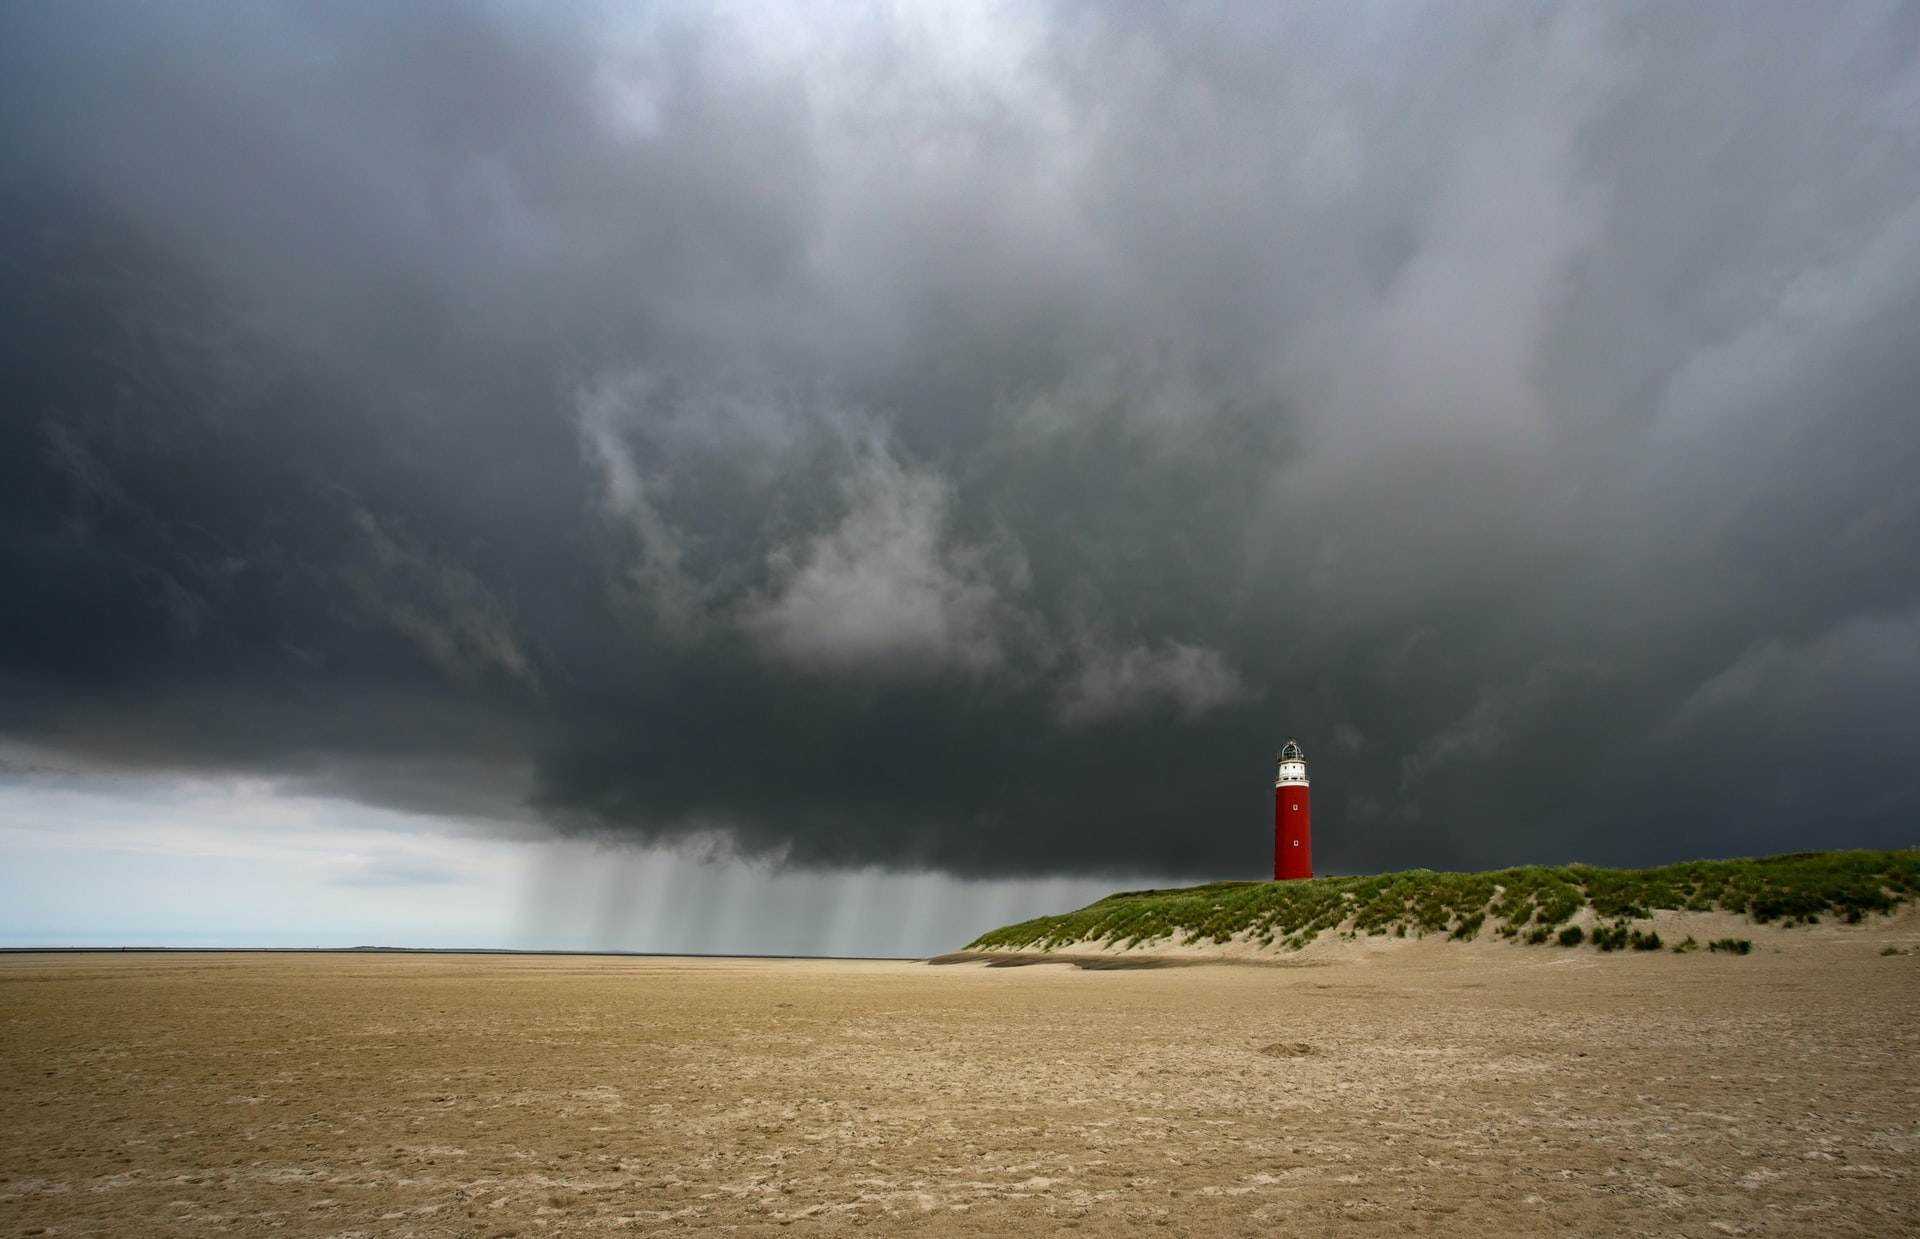 photo-of-a-thunderstorm-on-texel-netherlands